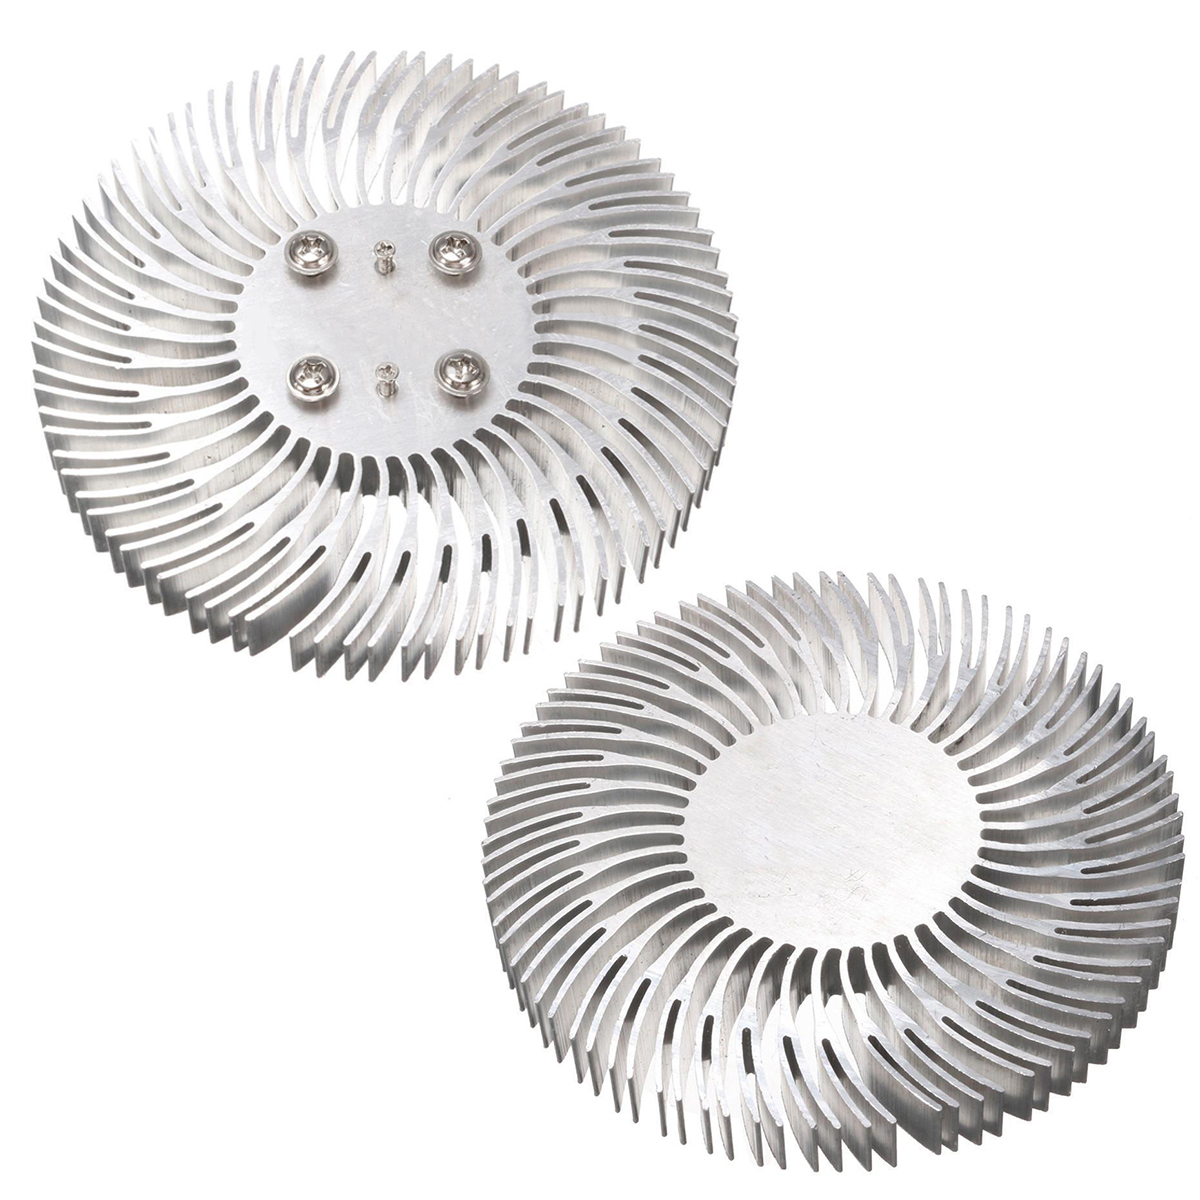 1pc Round Spiral Aluminum Heat Sink Radiator 90*10mm With 6pcs Screws For 10W High Power LED Lamp Heat Dissipation Mayitr flower ridge north bridge heat sink aluminum zero total compatible with fan noise